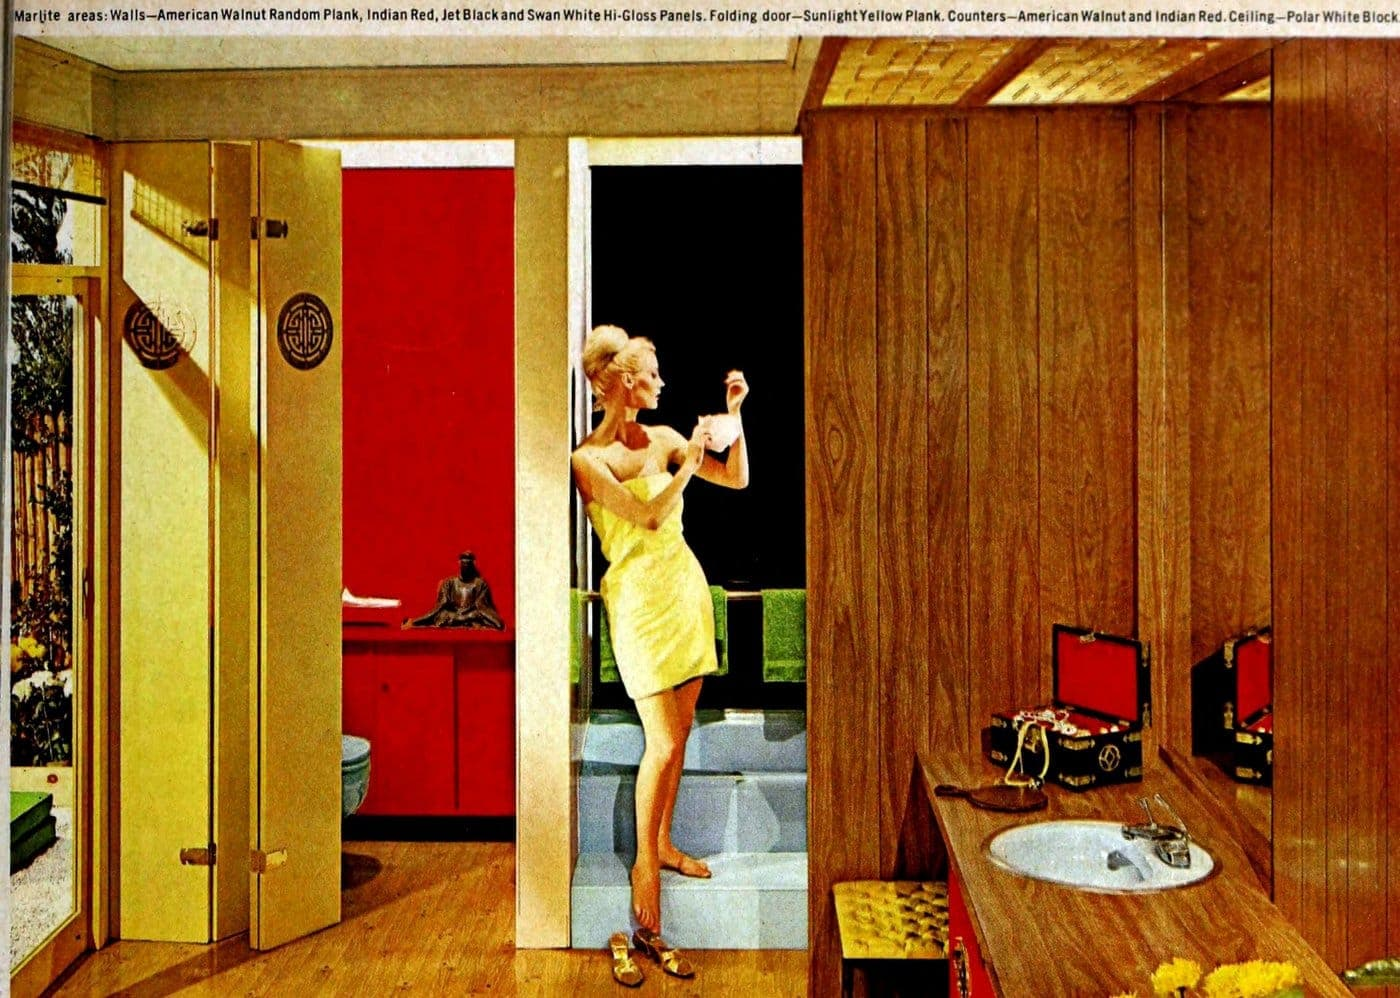 Vintage 1960s decor for bathrooms from 1964